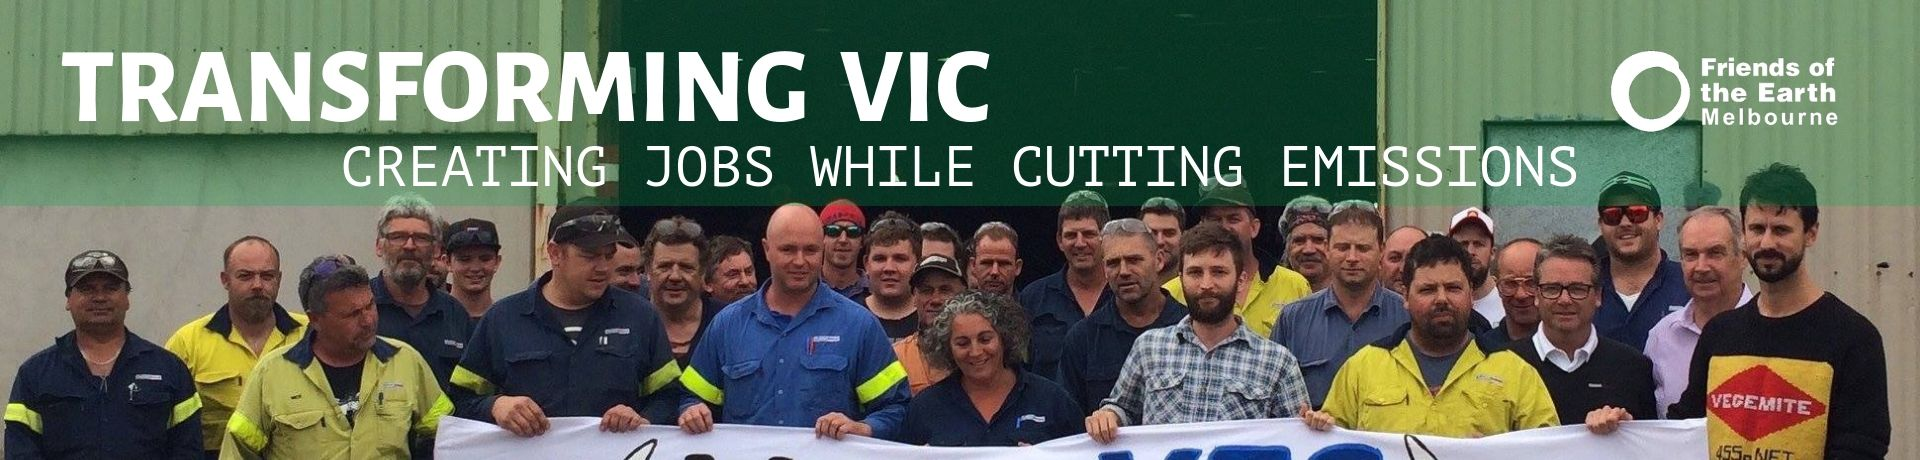 Transforming Victoria: creating jobs while cutting emissions